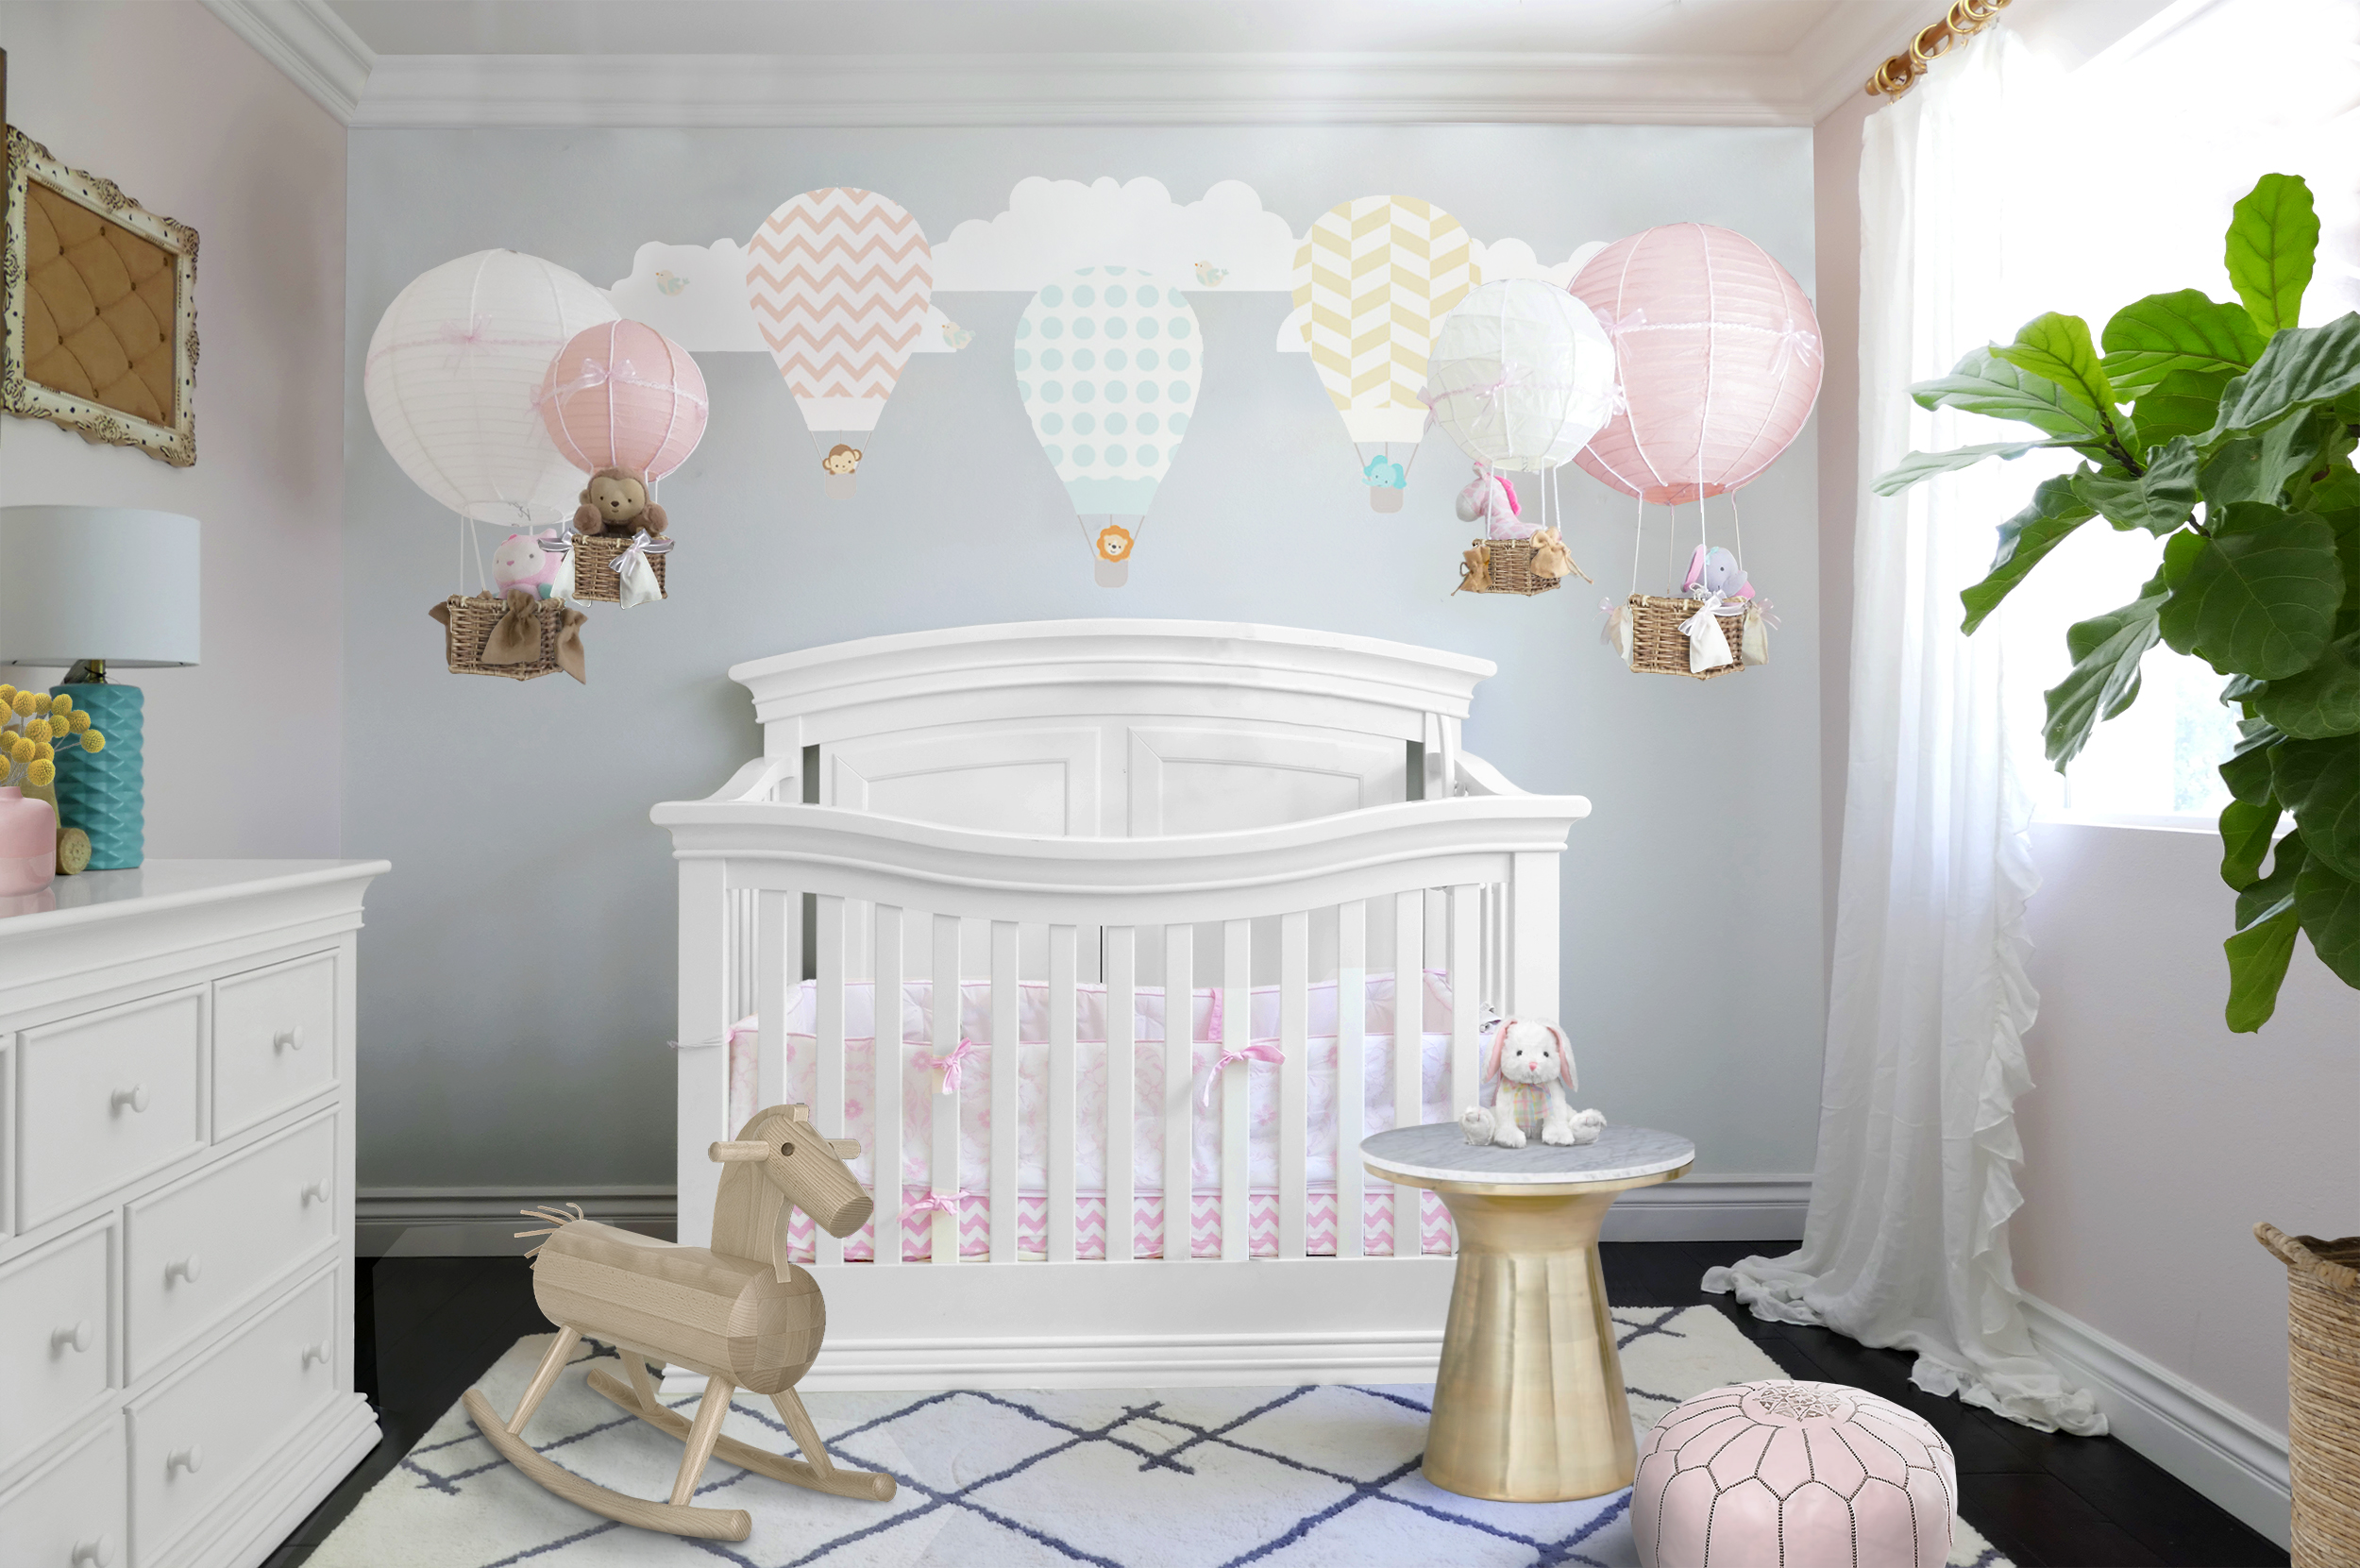 Balloon Nursery